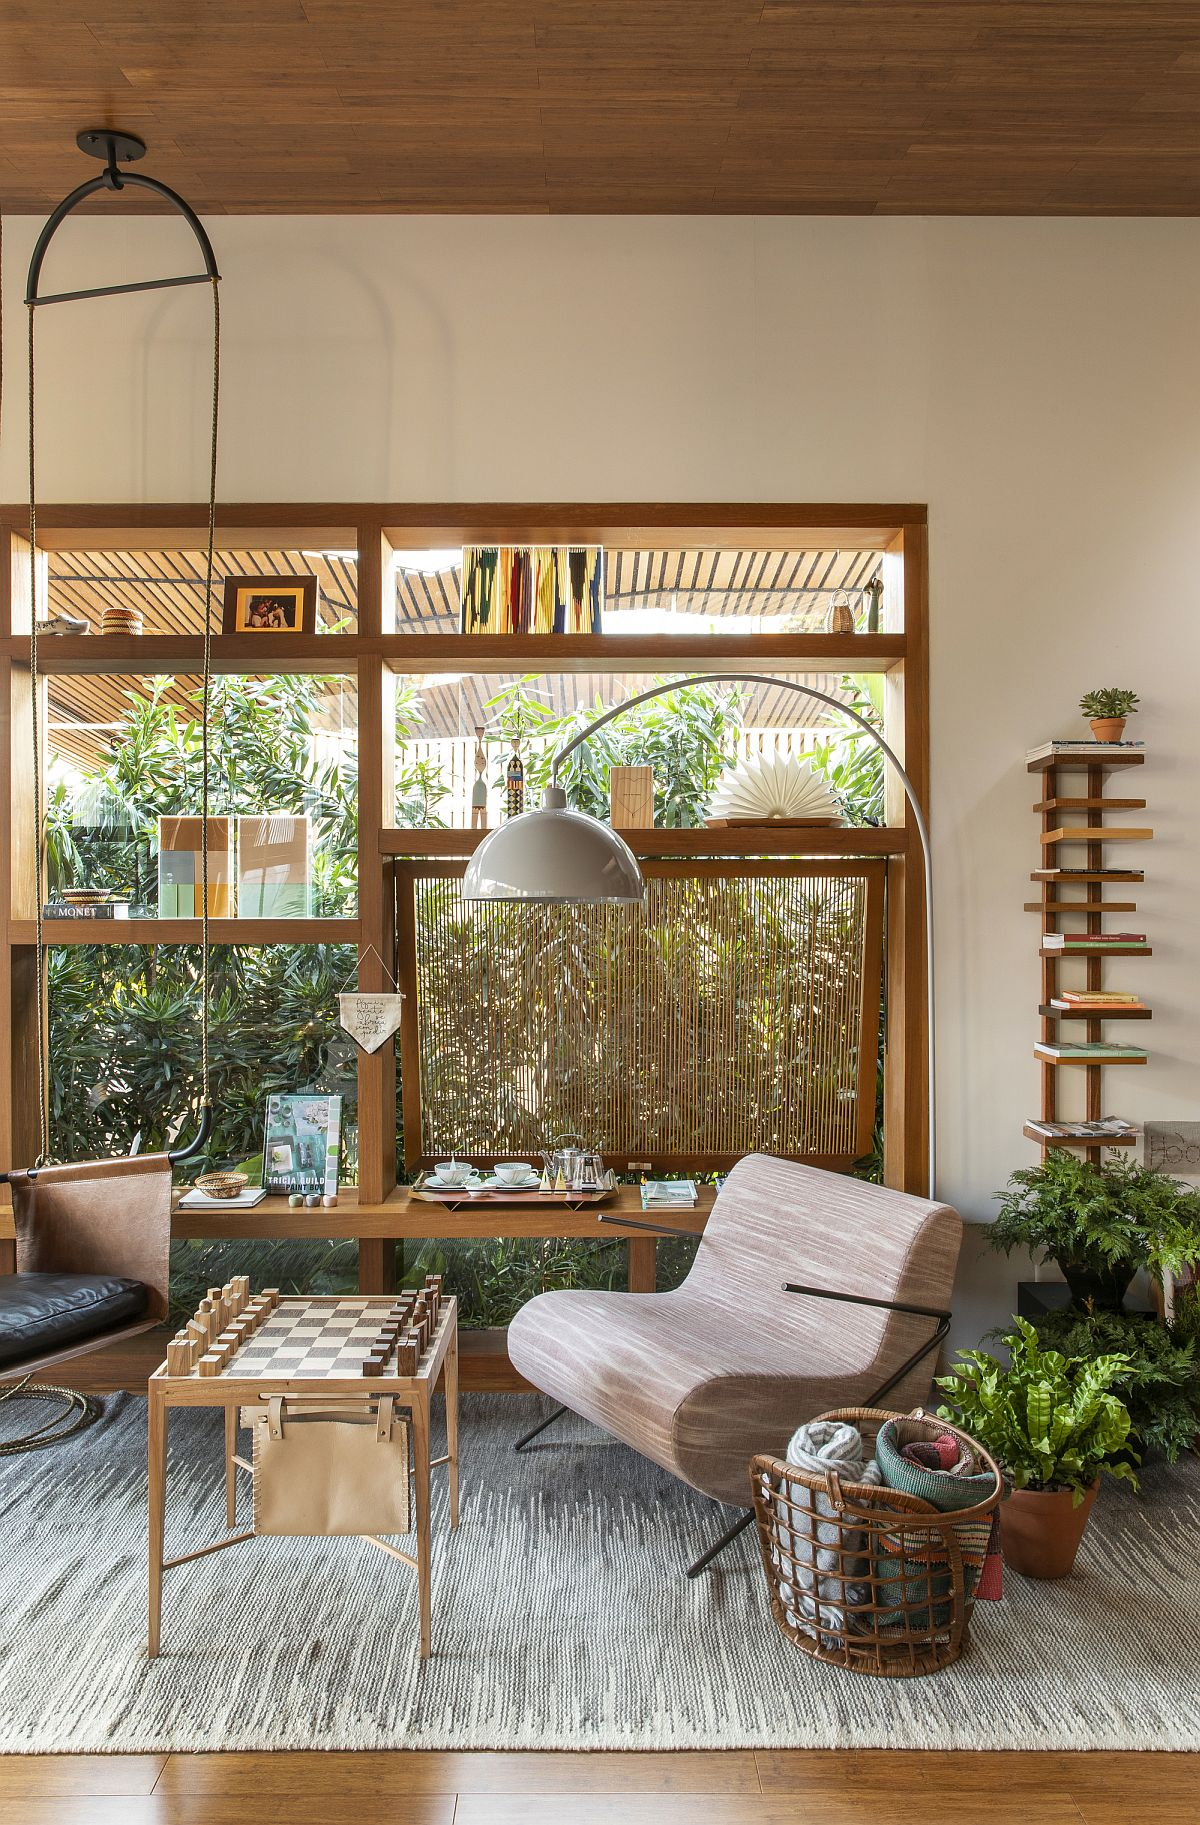 Cusom-wooden-shelf-and-glass-walls-give-the-family-room-a-bespoke-look-41448